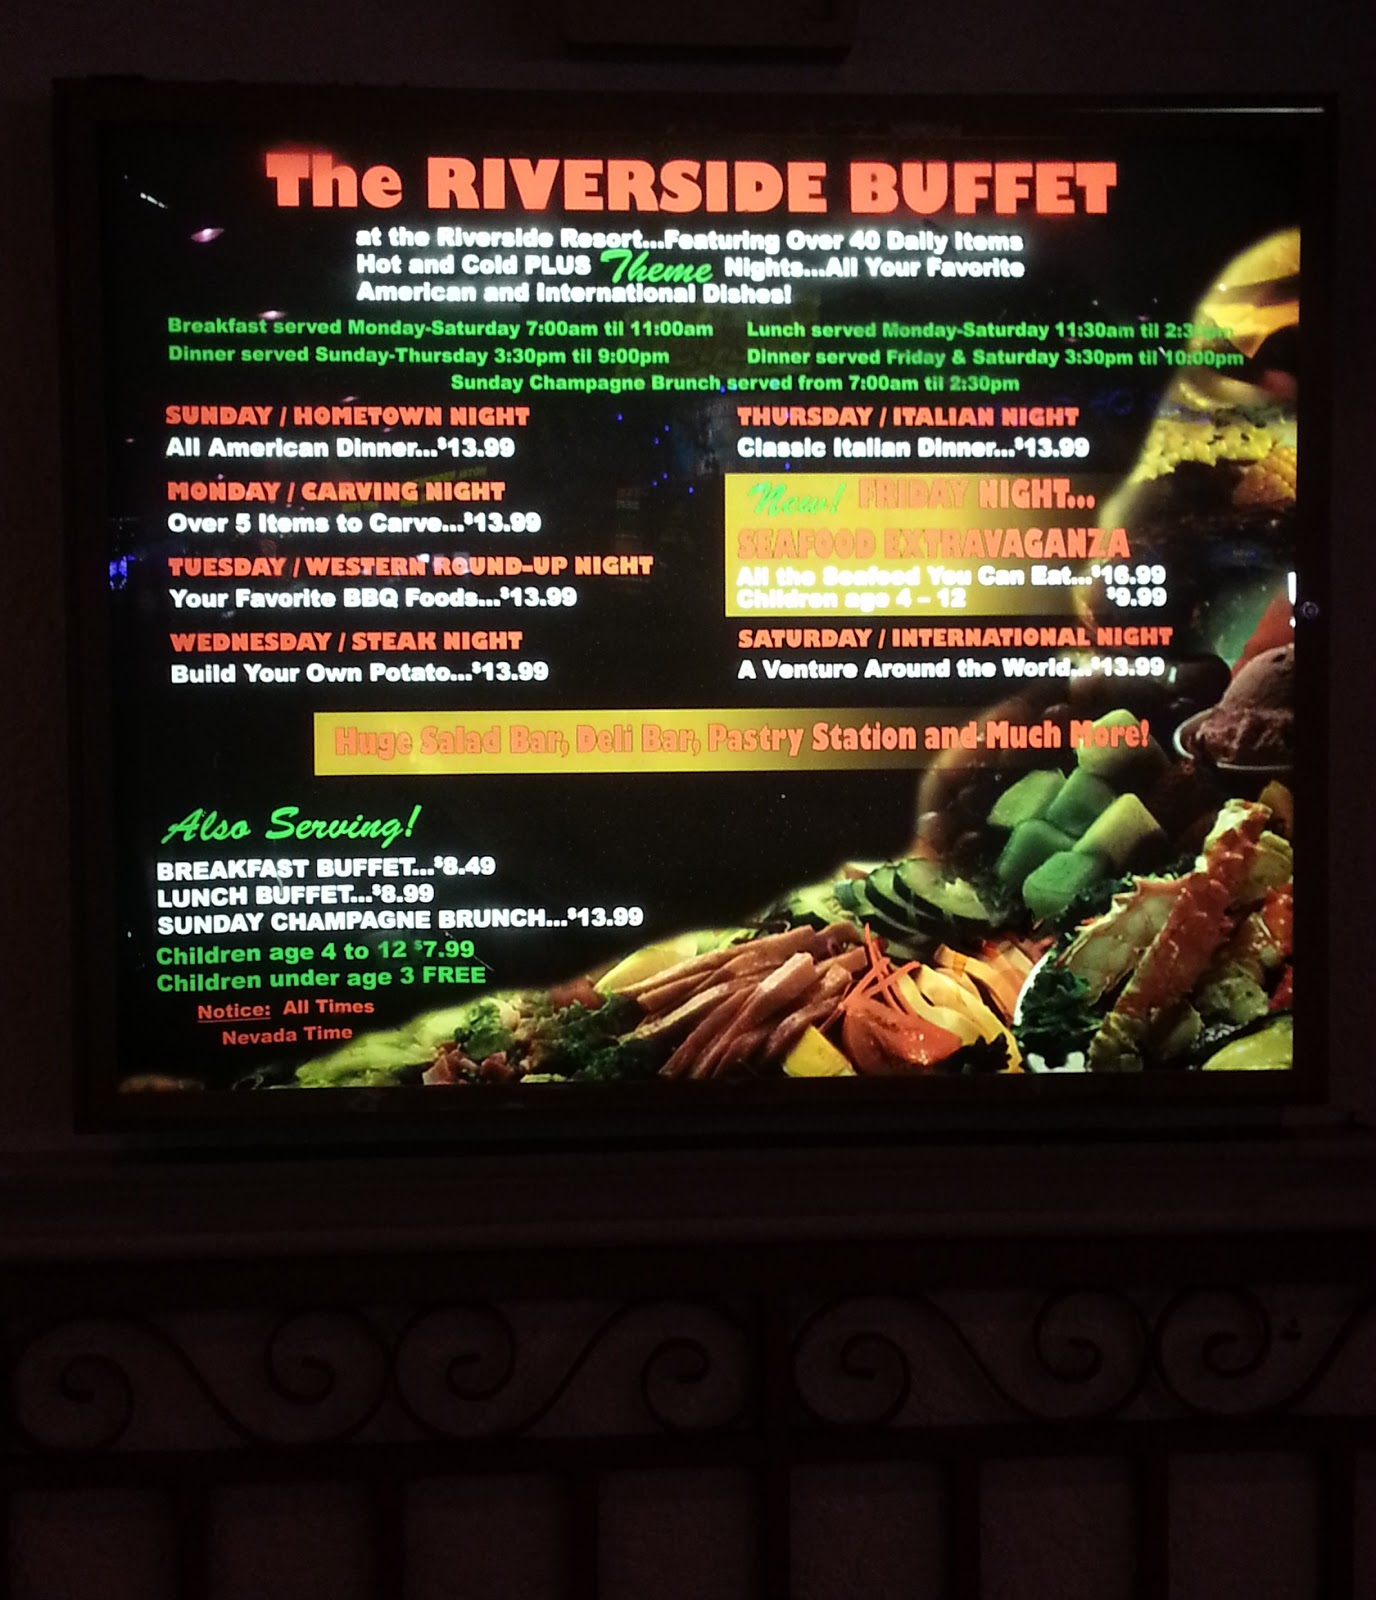 laughlin buzz riverside casino sunday brunch laughin nv rh laughlinbuzz blogspot com riverside casino buffet laughlin riverside casino buffet laughlin nv